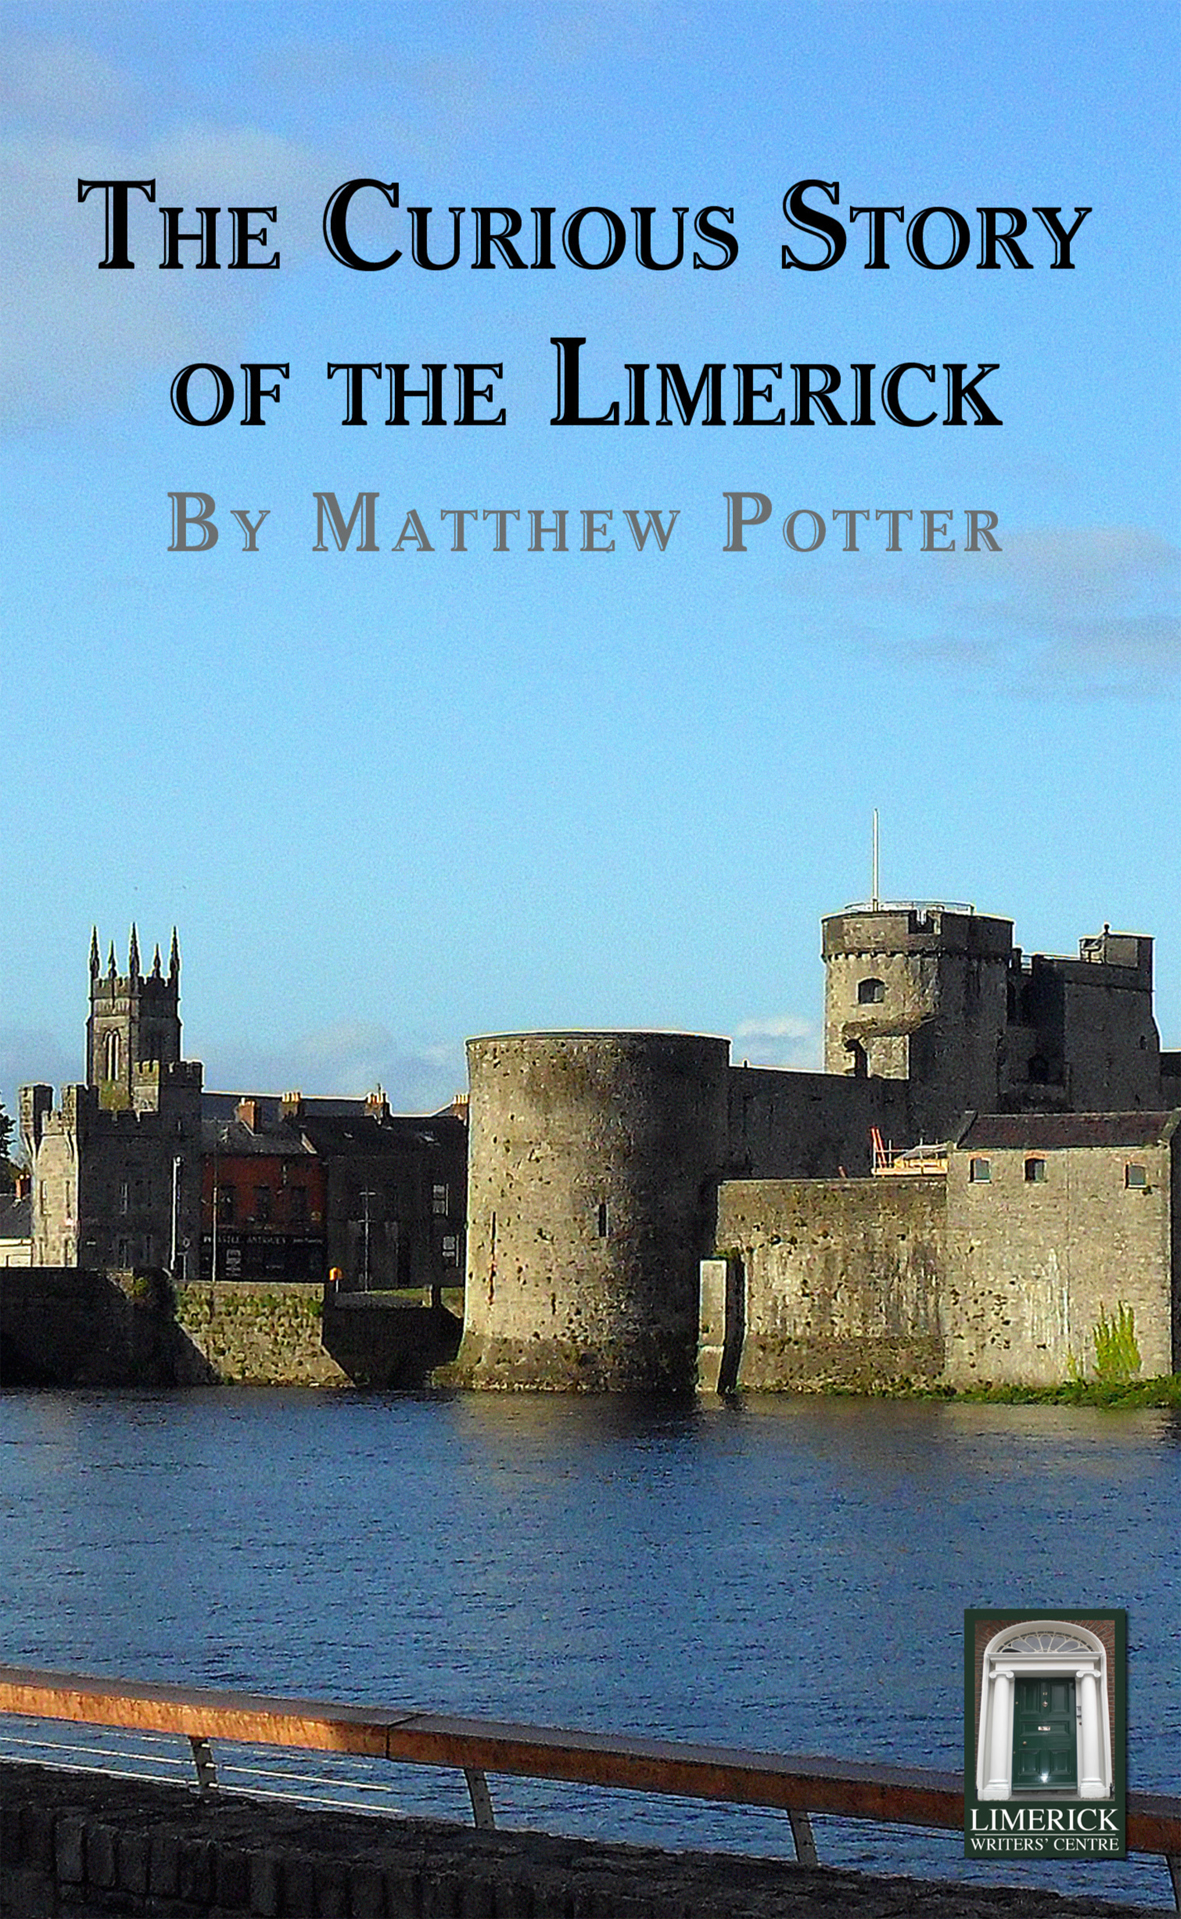 COVER-The curious story of the limerick